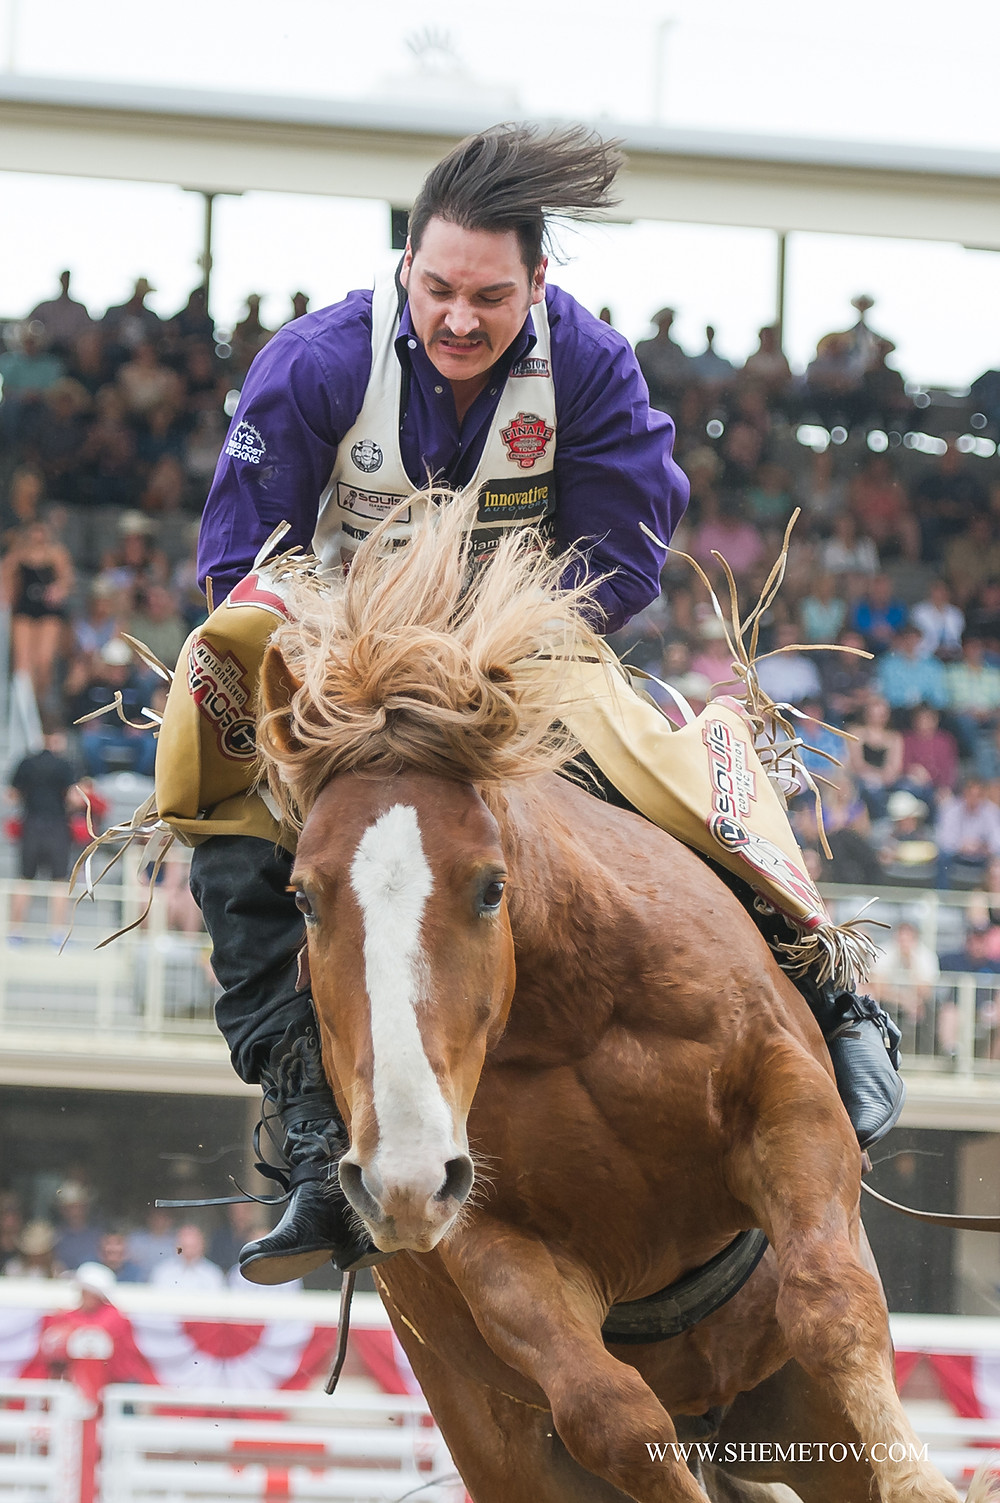 the pictiure is taken during the rodeo event at the Calgary Stampede 2019